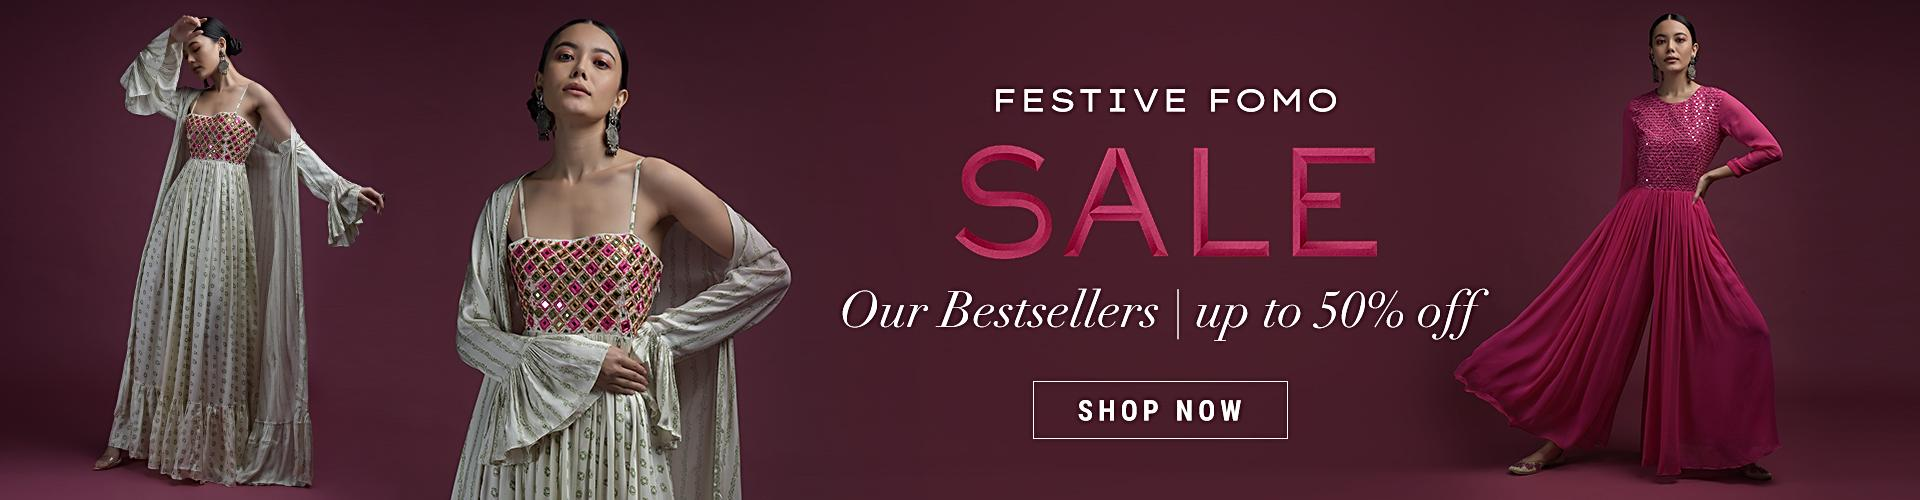 Our Bestsellers on Sale